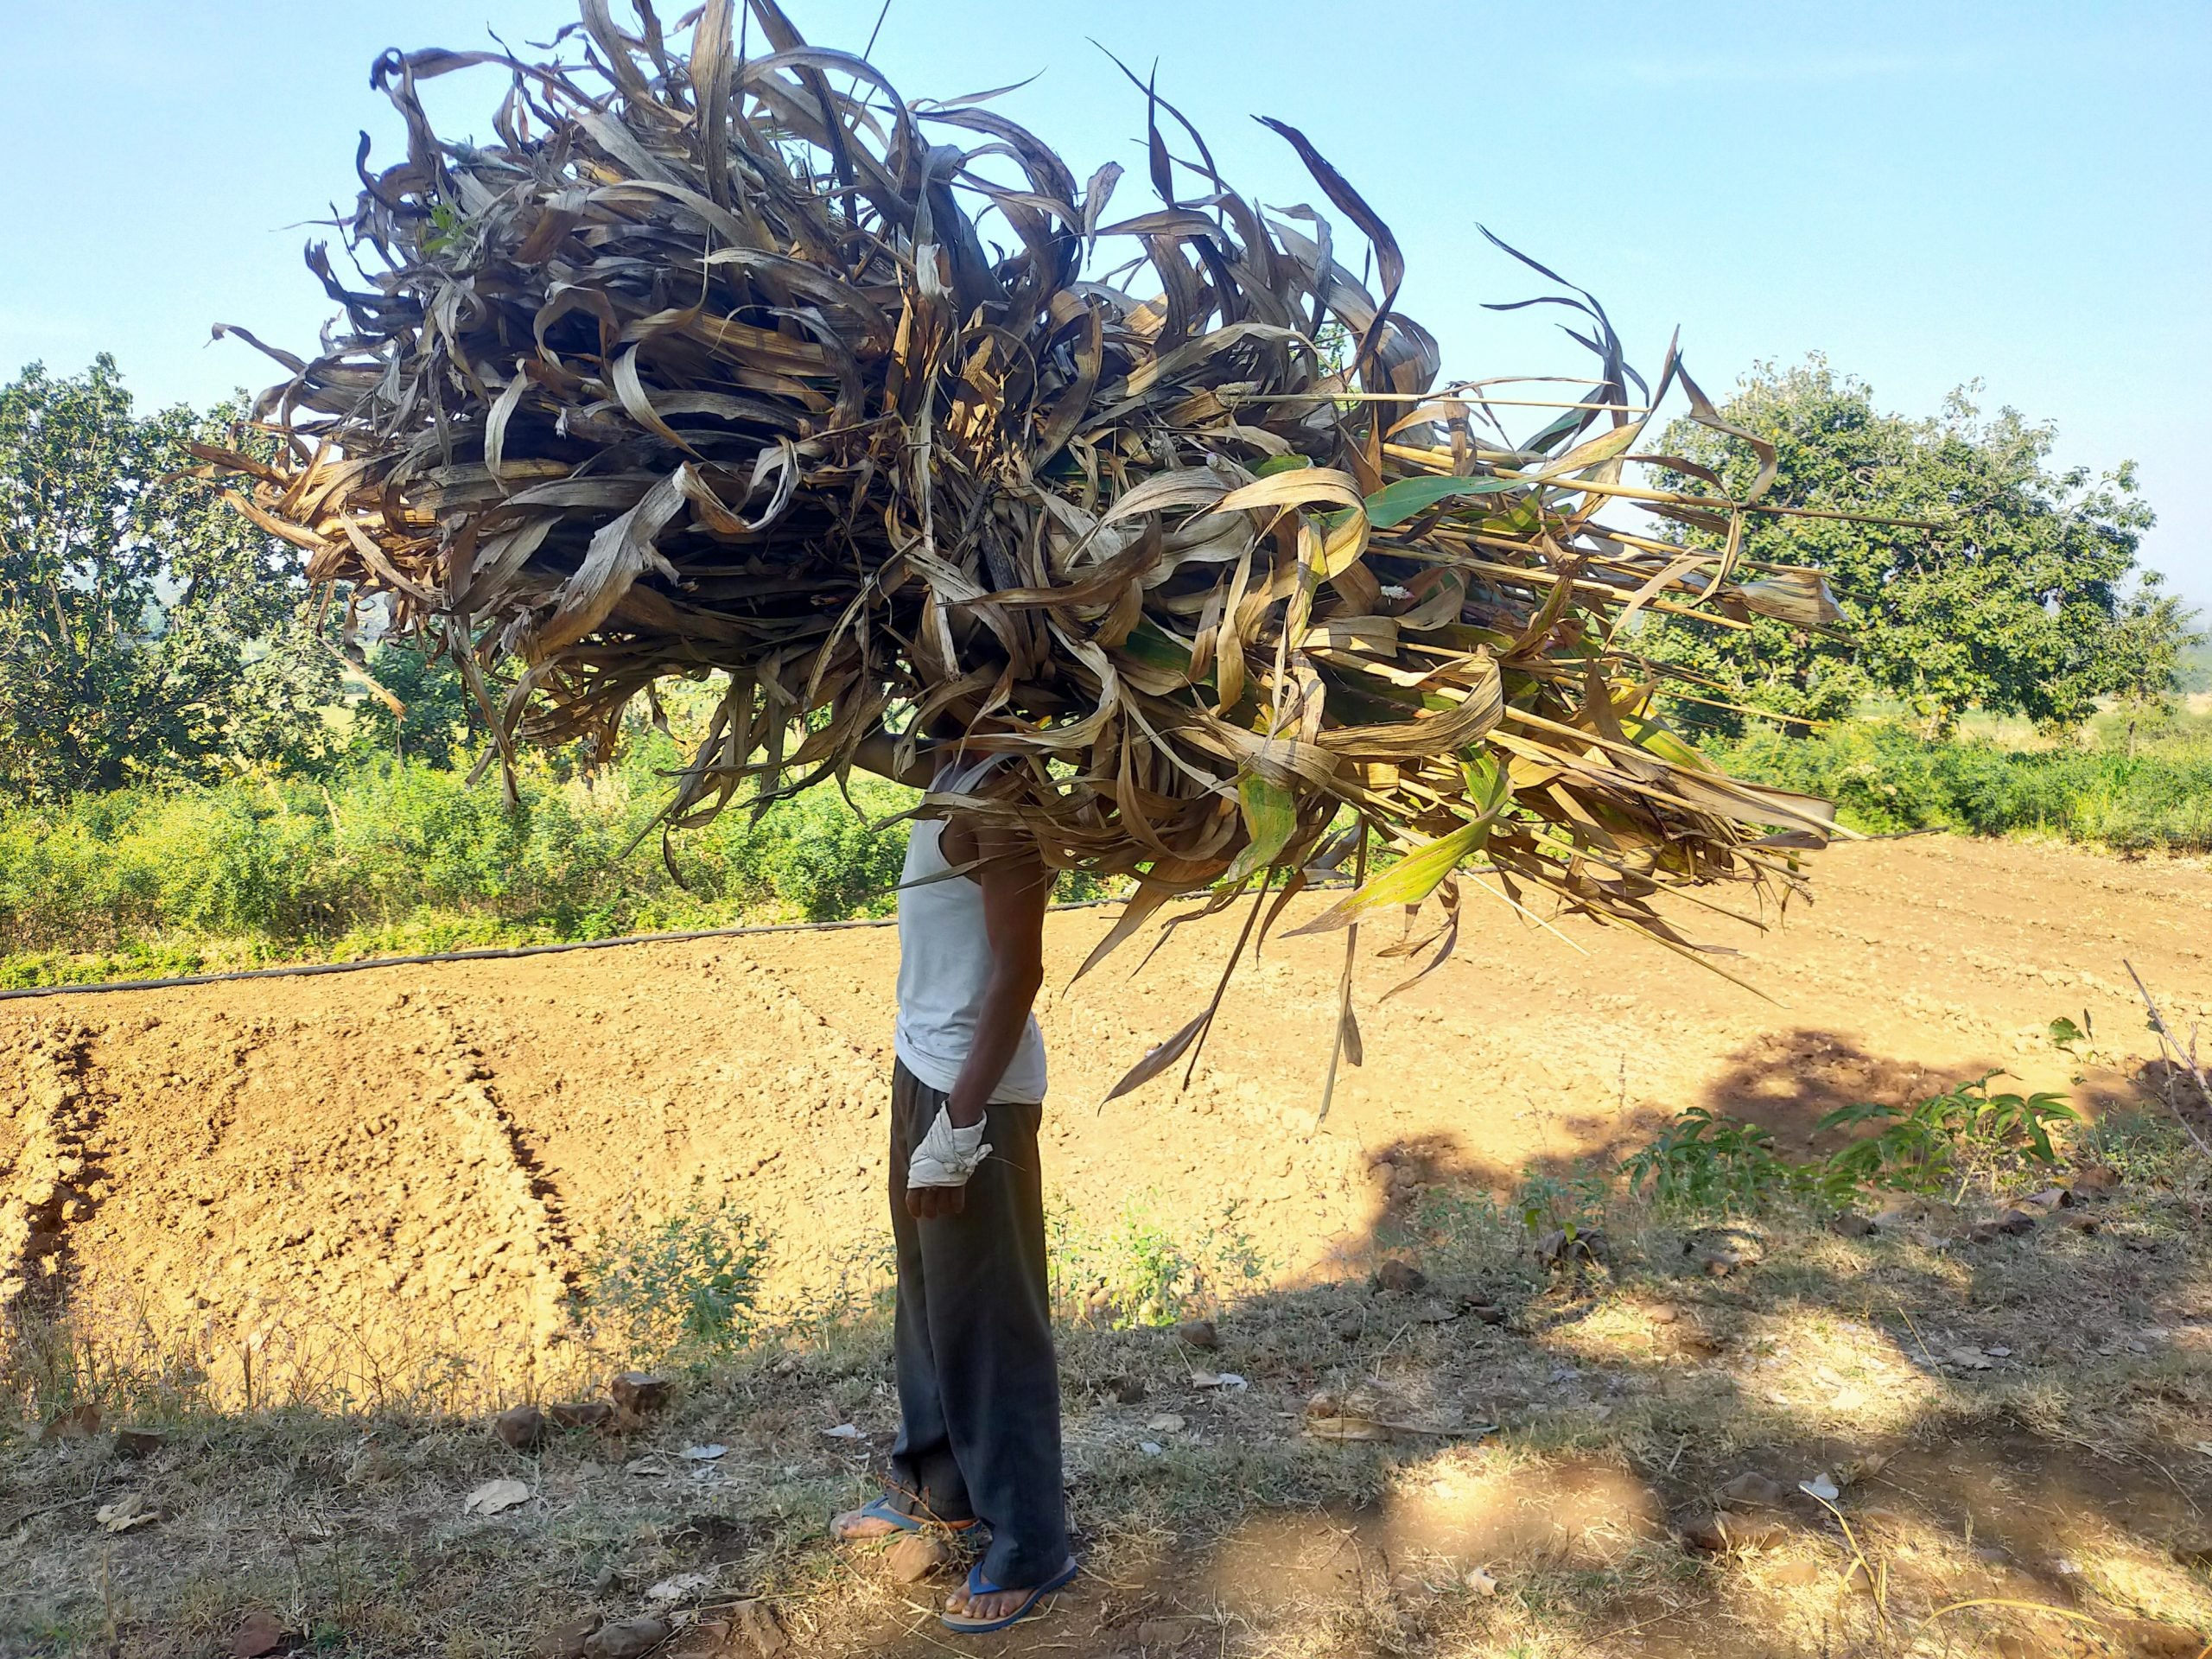 A farmer carrying animal fodder